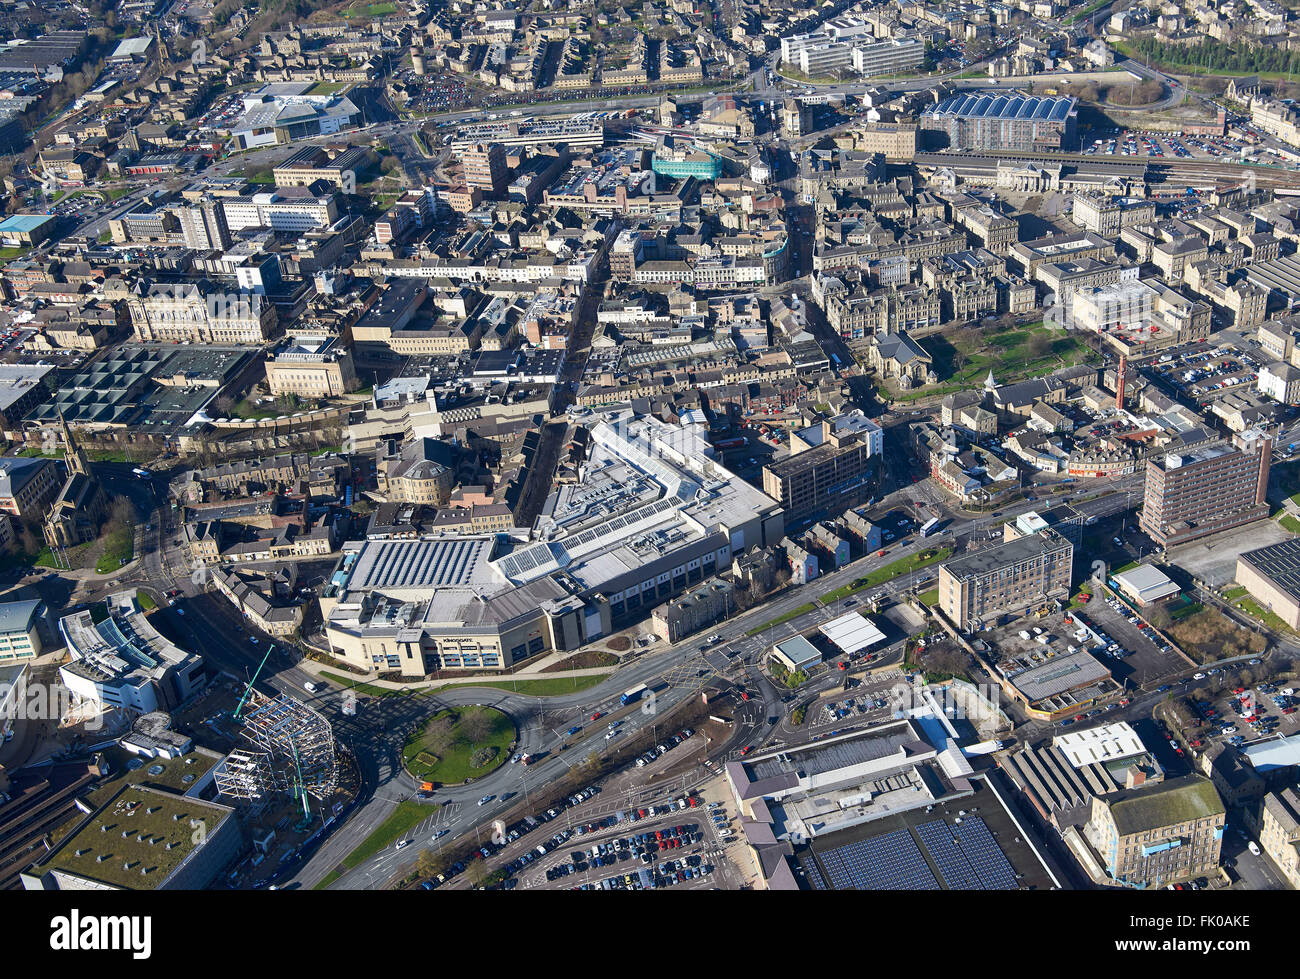 An aerial view of Huddersfield Town Centre, West Yorkshire, Northern England, UK - Stock Image